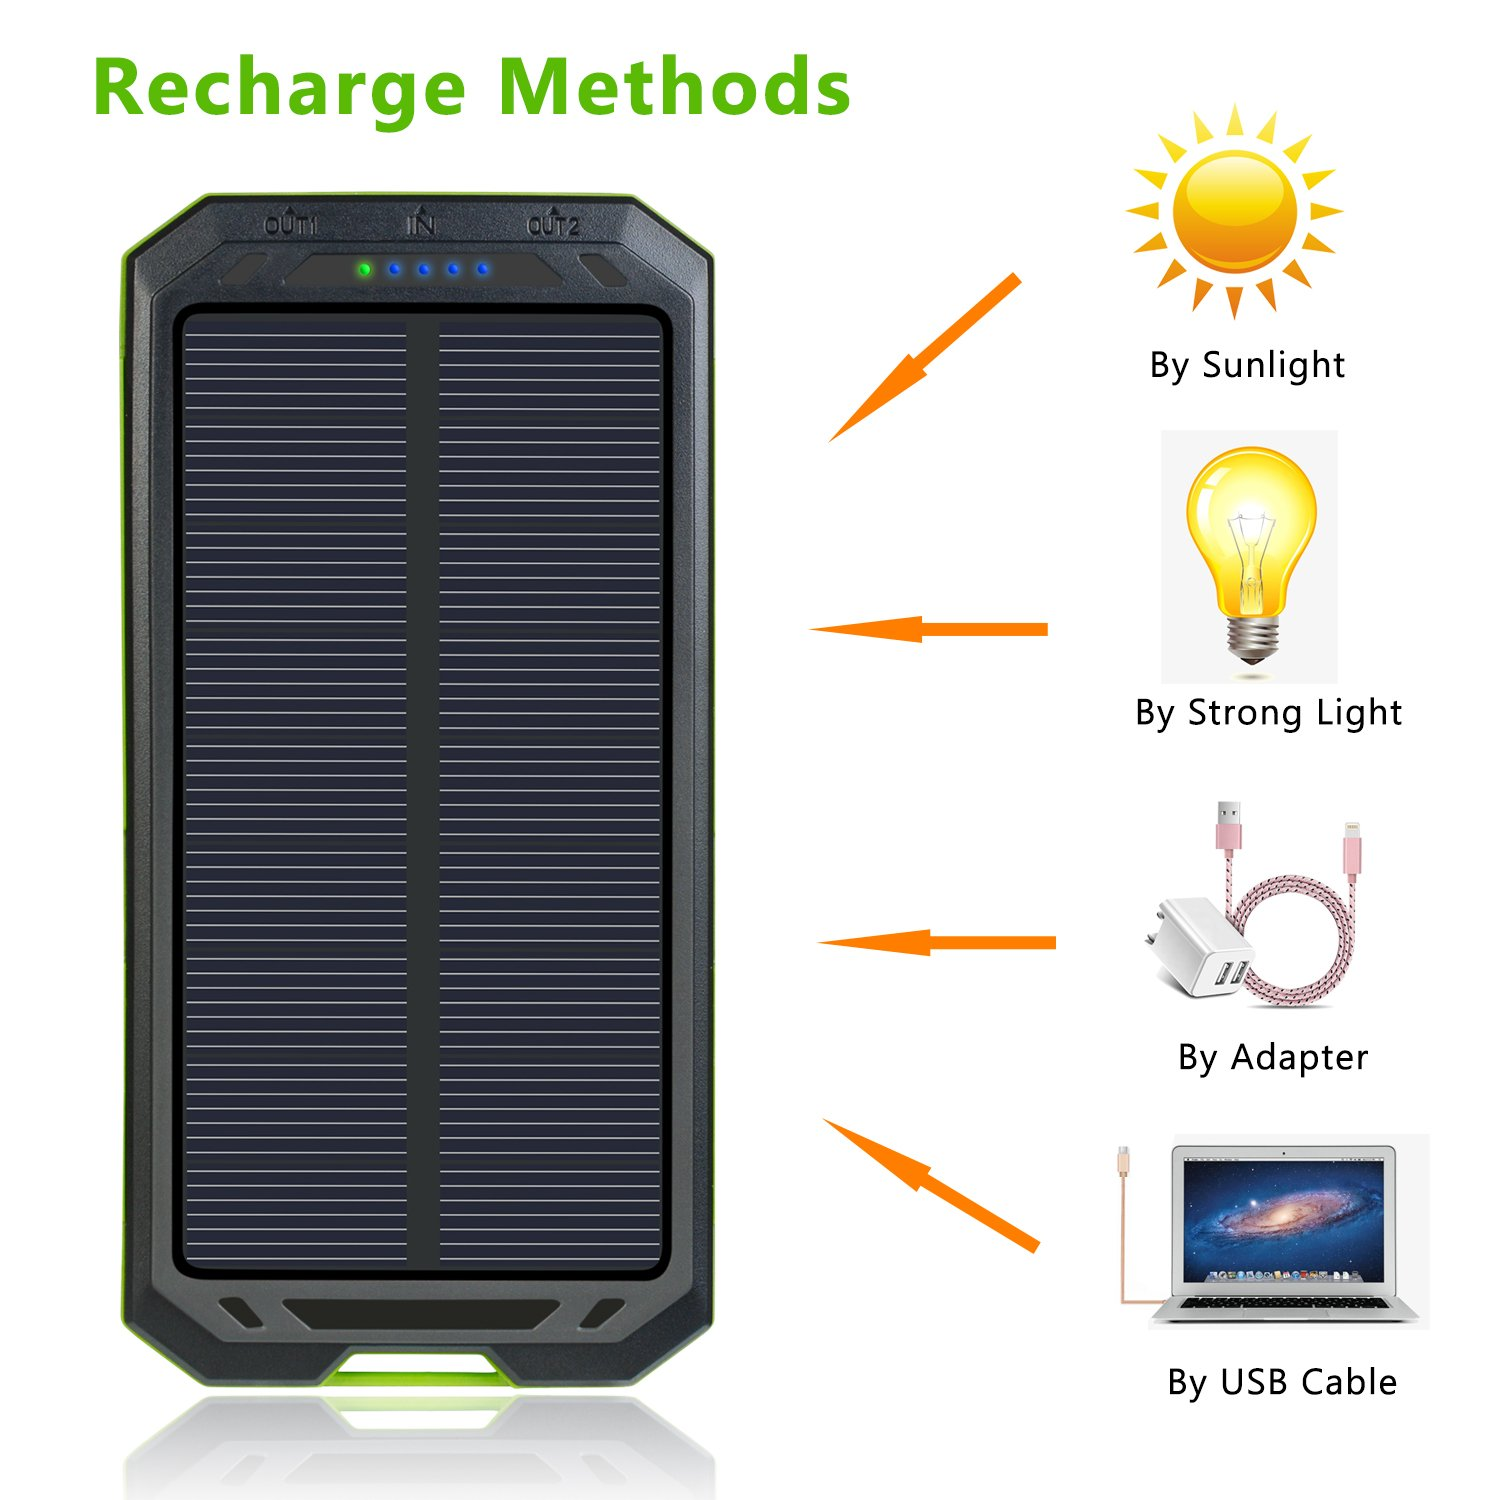 Solar Charger 12000mah Addtop Power Bank High Battery Via The Mini Usb Port On Charging Circuit Or Efficiency Portable Outdoor Cell Phone With Dual And 9 Led Light For